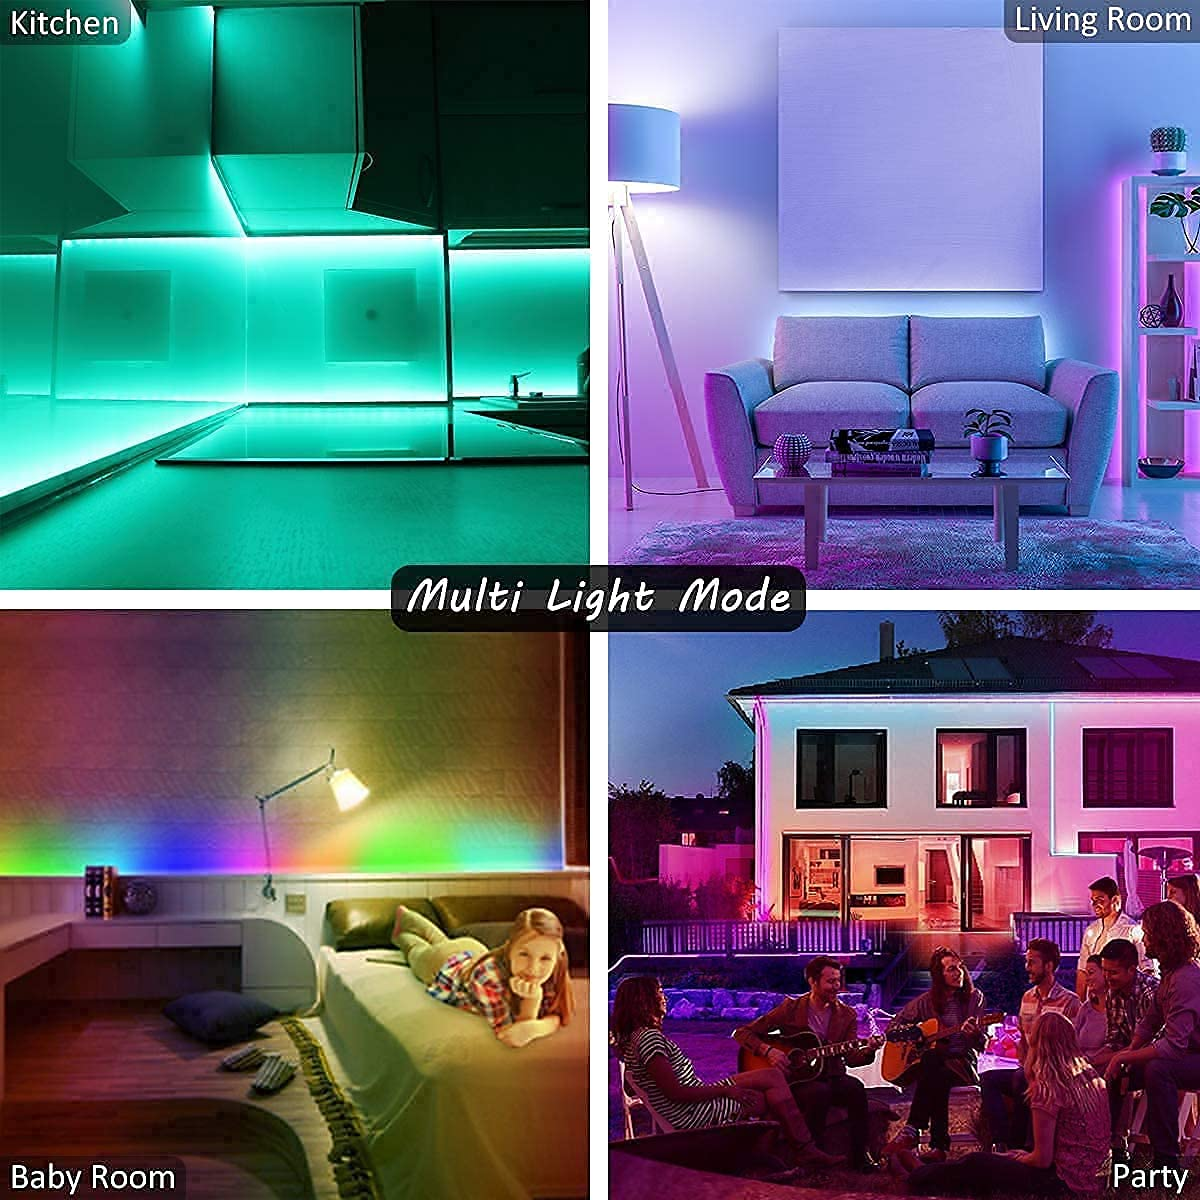 Led Lights, L8star 15m Smart Led Light 5050 Colorful RGB Led Strips Lights for Bedroom with Bluetooth and Remote Control Sync to Music Apply for Home Decoration